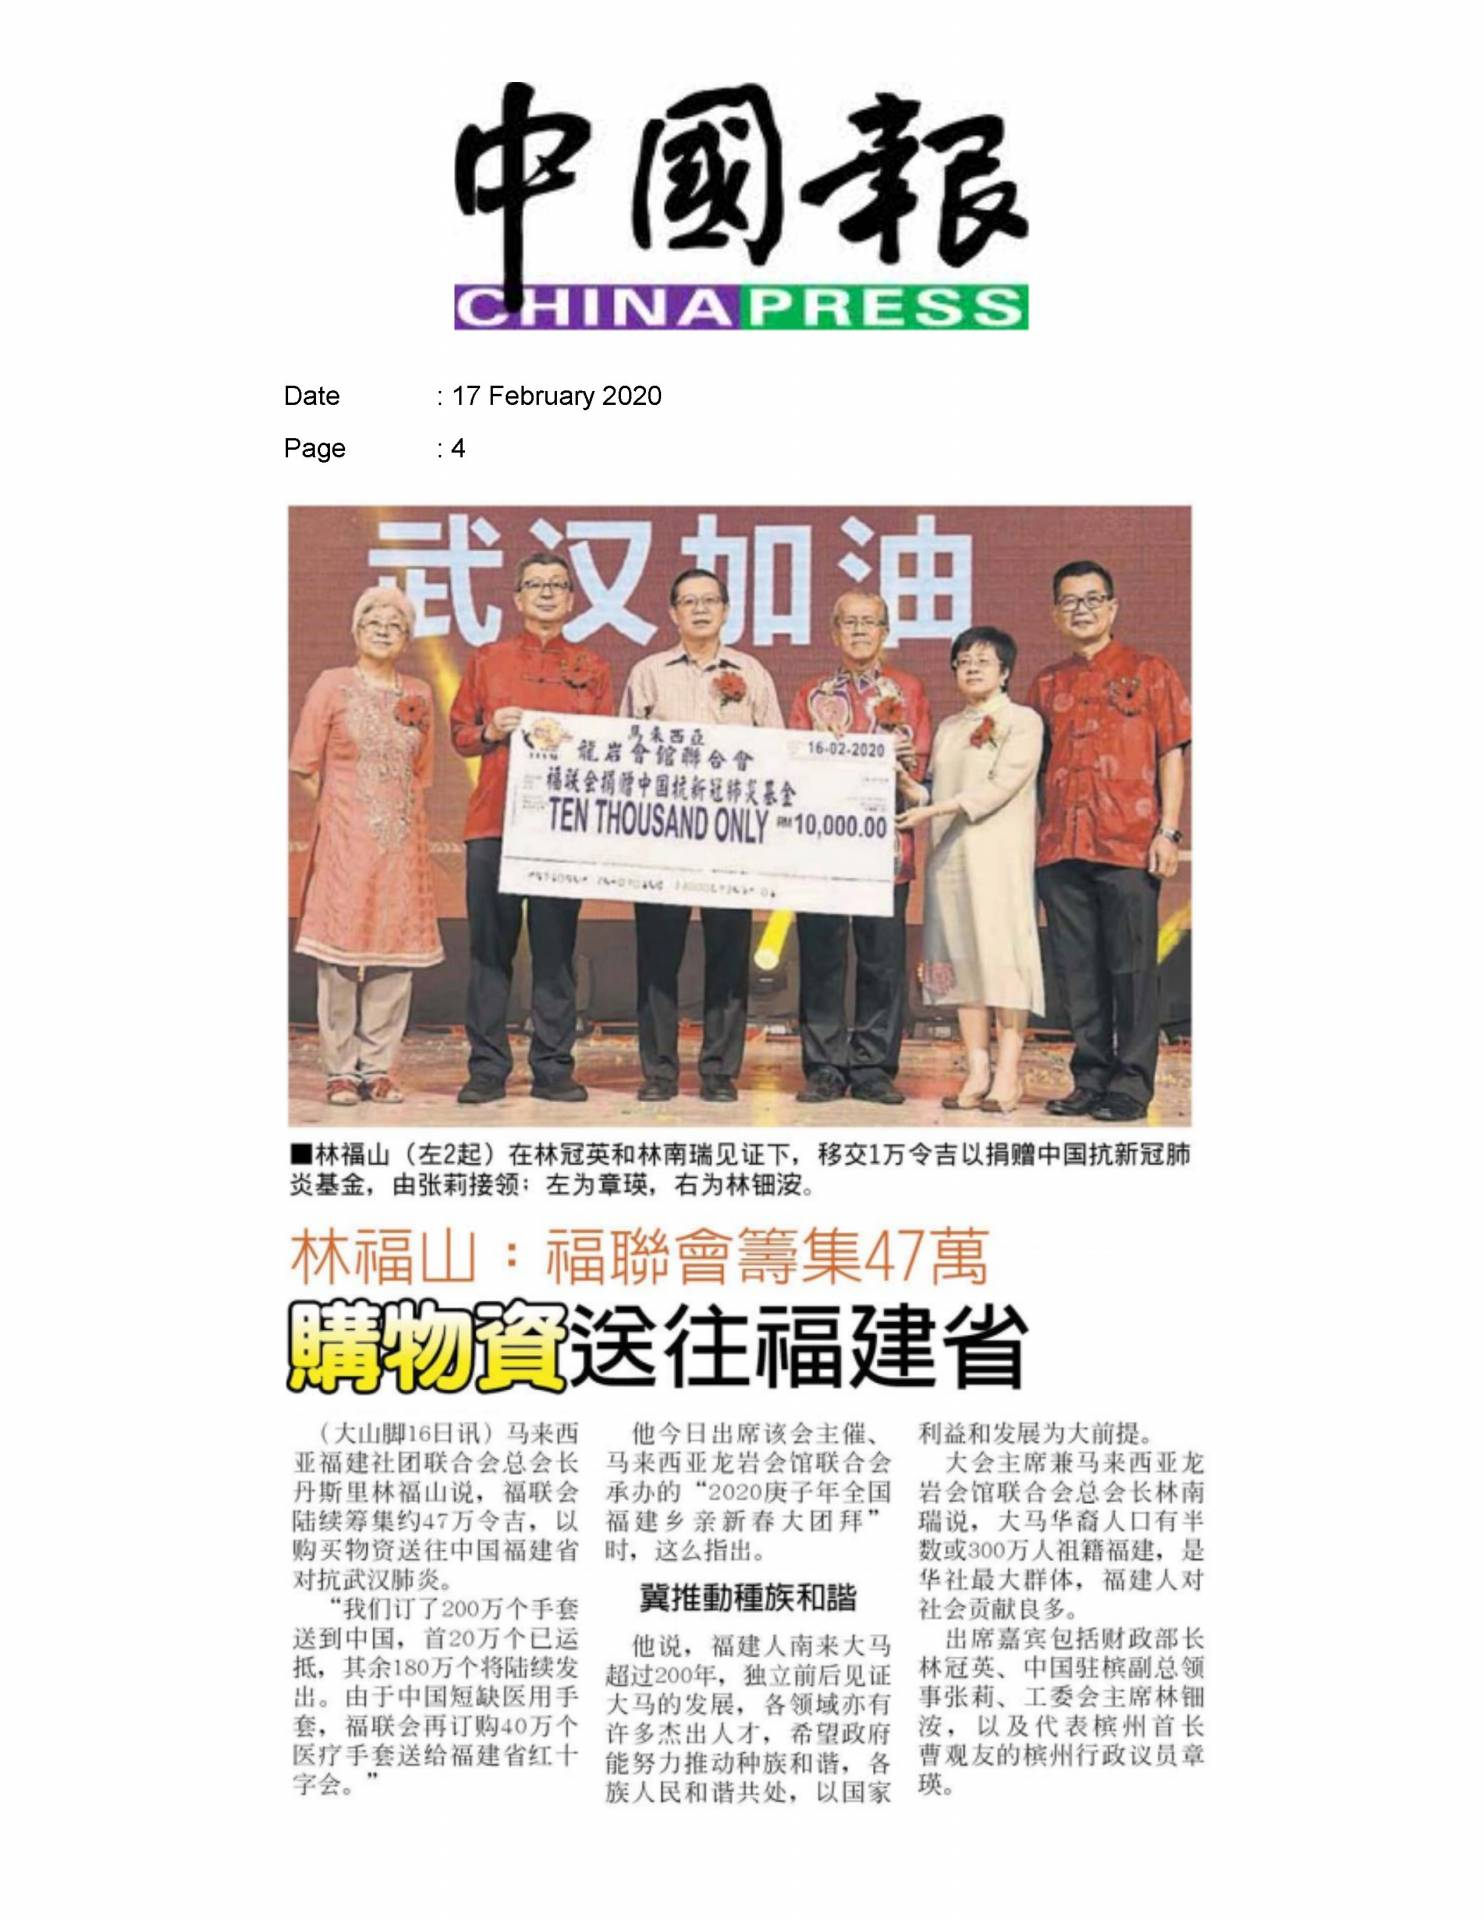 2020.02.17 China Press - Buys necessities to send to Hokkien province